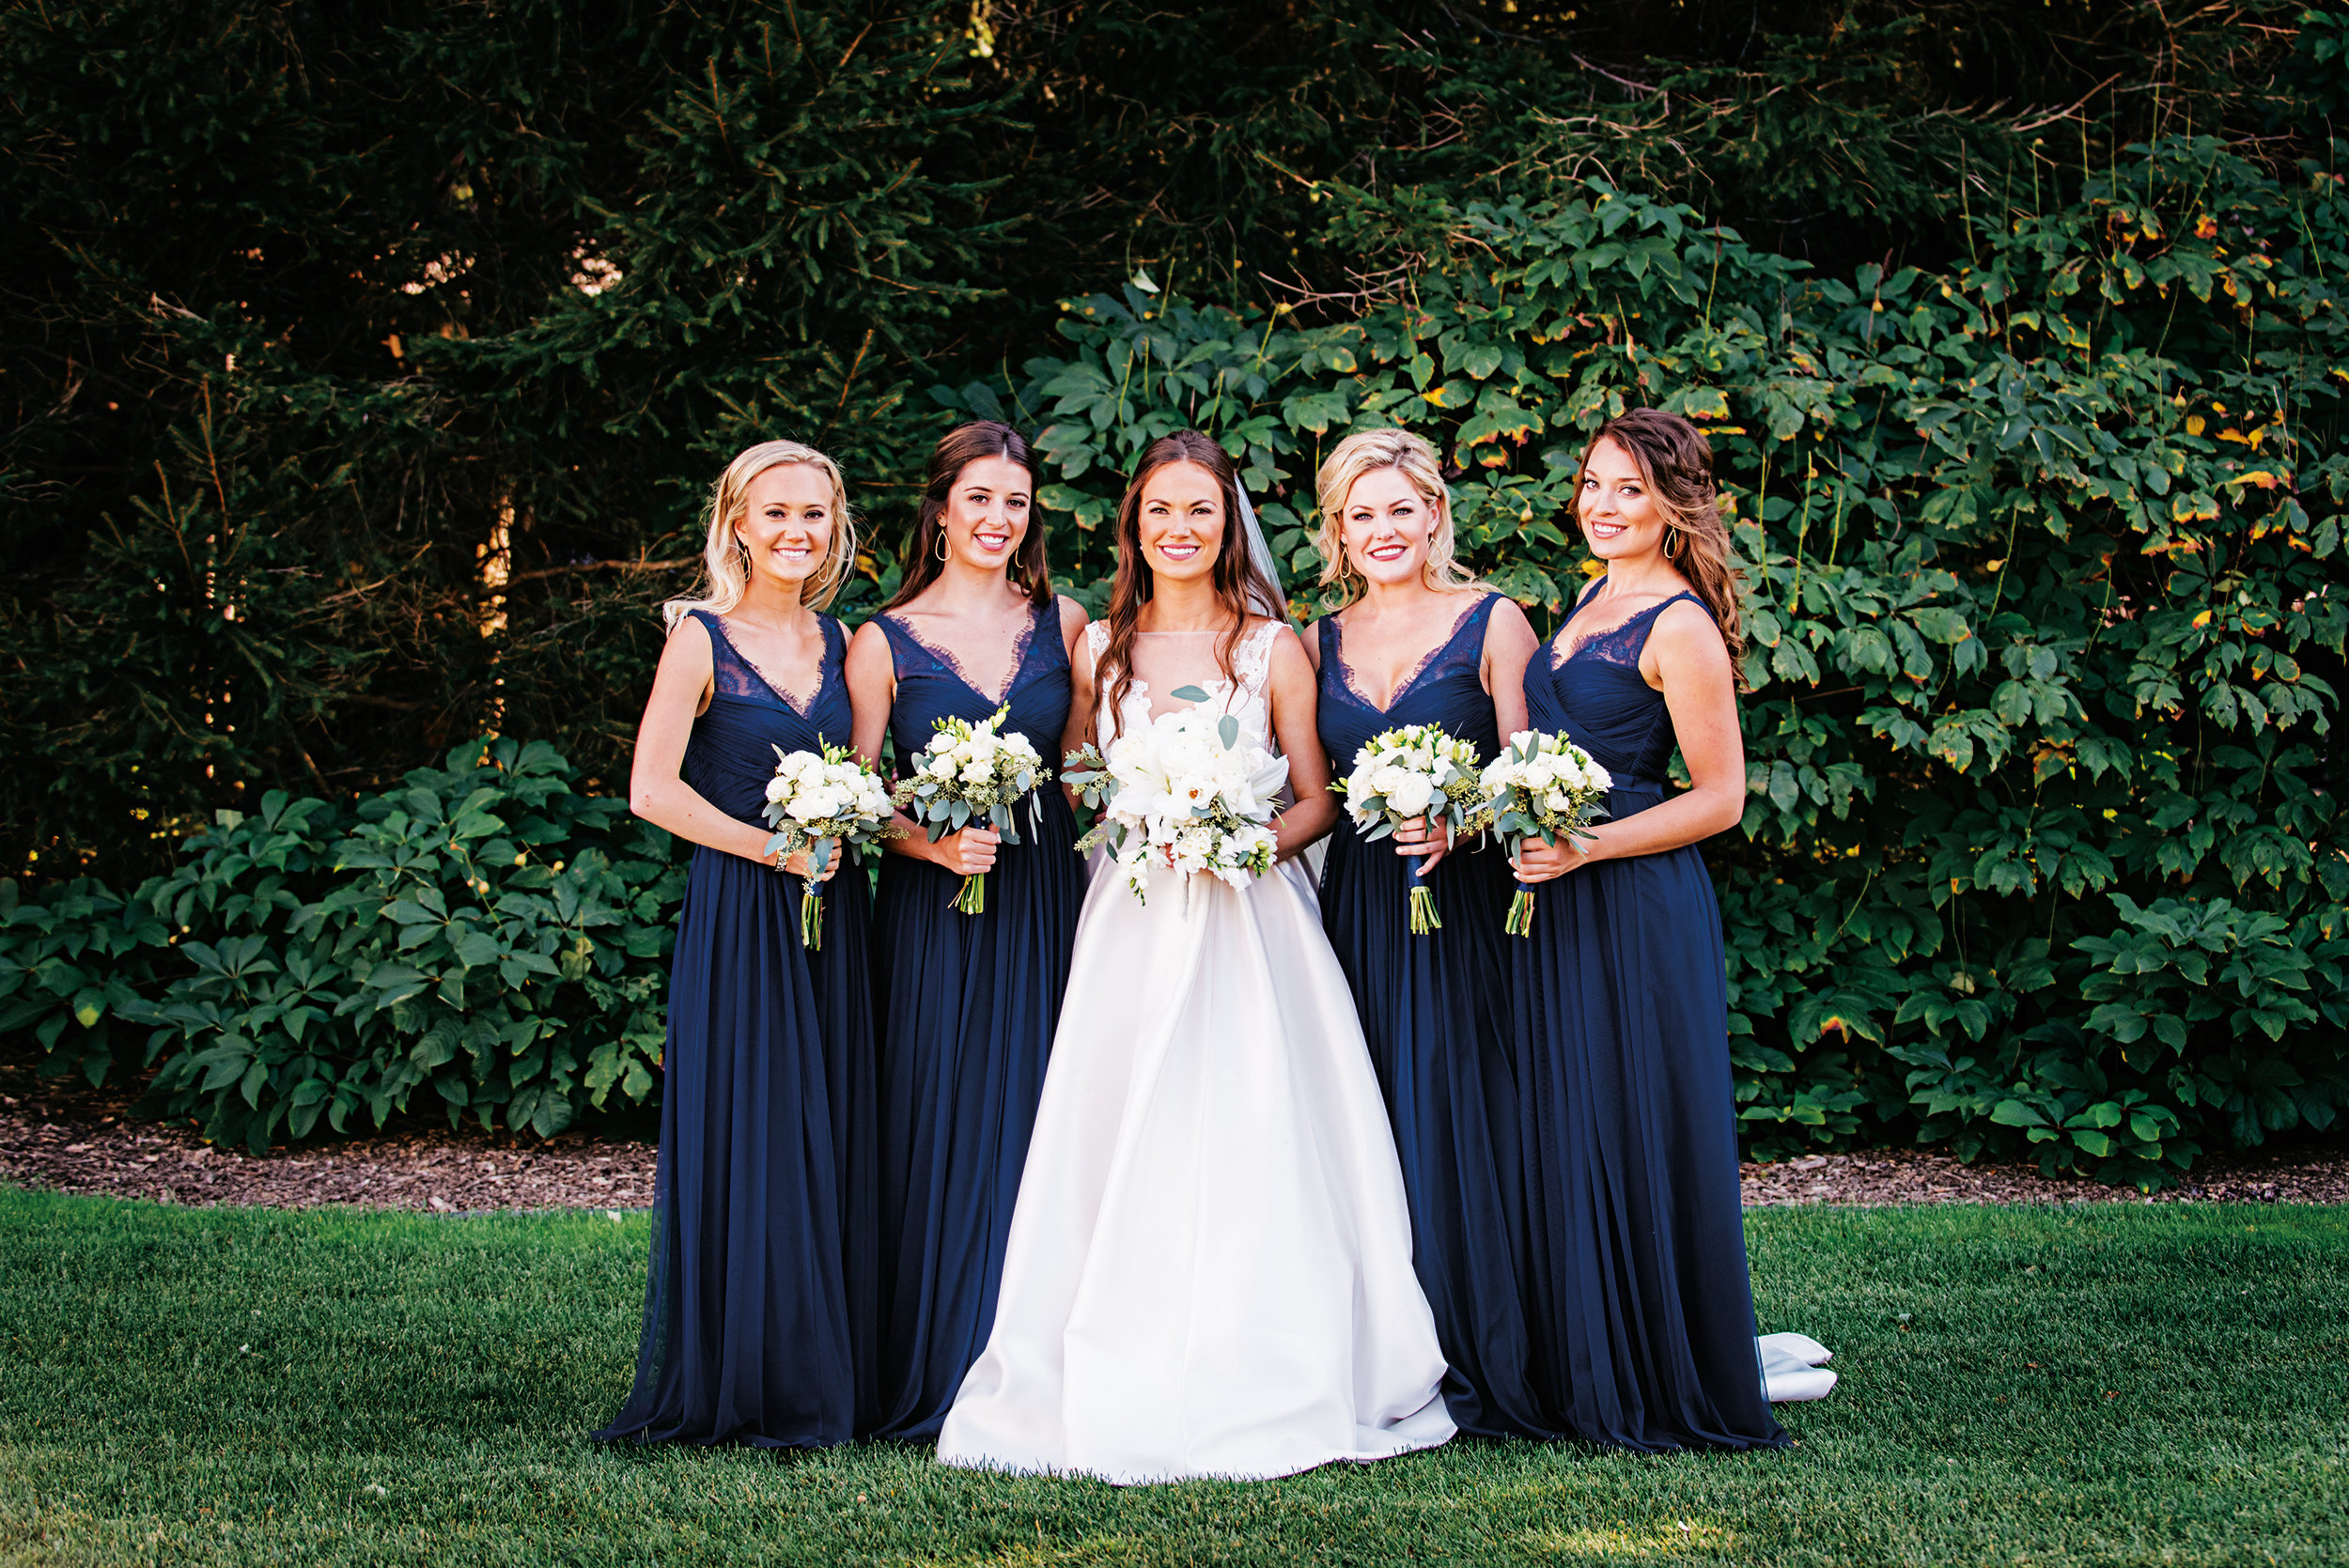 Natalie (Kleeman) Klapholz '09 married her college sweetheart, Jacob Klapholz, on September 9, 2017, in Lake Bluff, Ill., with four Paulies in the bridal party. (l. to r.): Andie Kleeman '11, Isabel Mitchell '09, Natalie, Taylor Willis '09, and Stephanie Schaeberle '09.